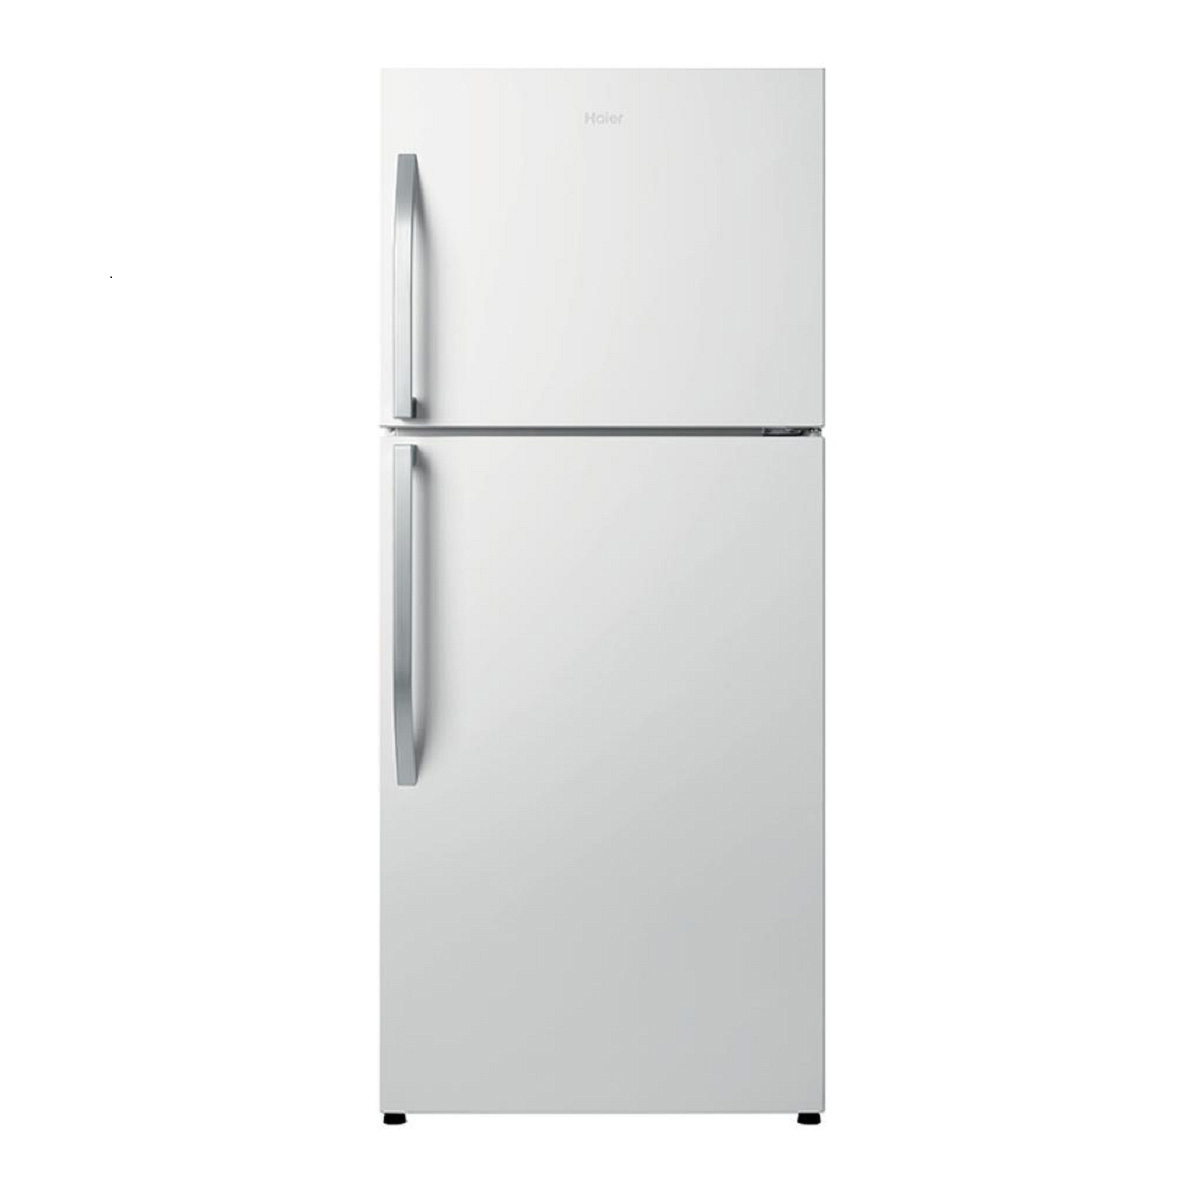 Haier HRF503TW1 503L Top Mount Fridge